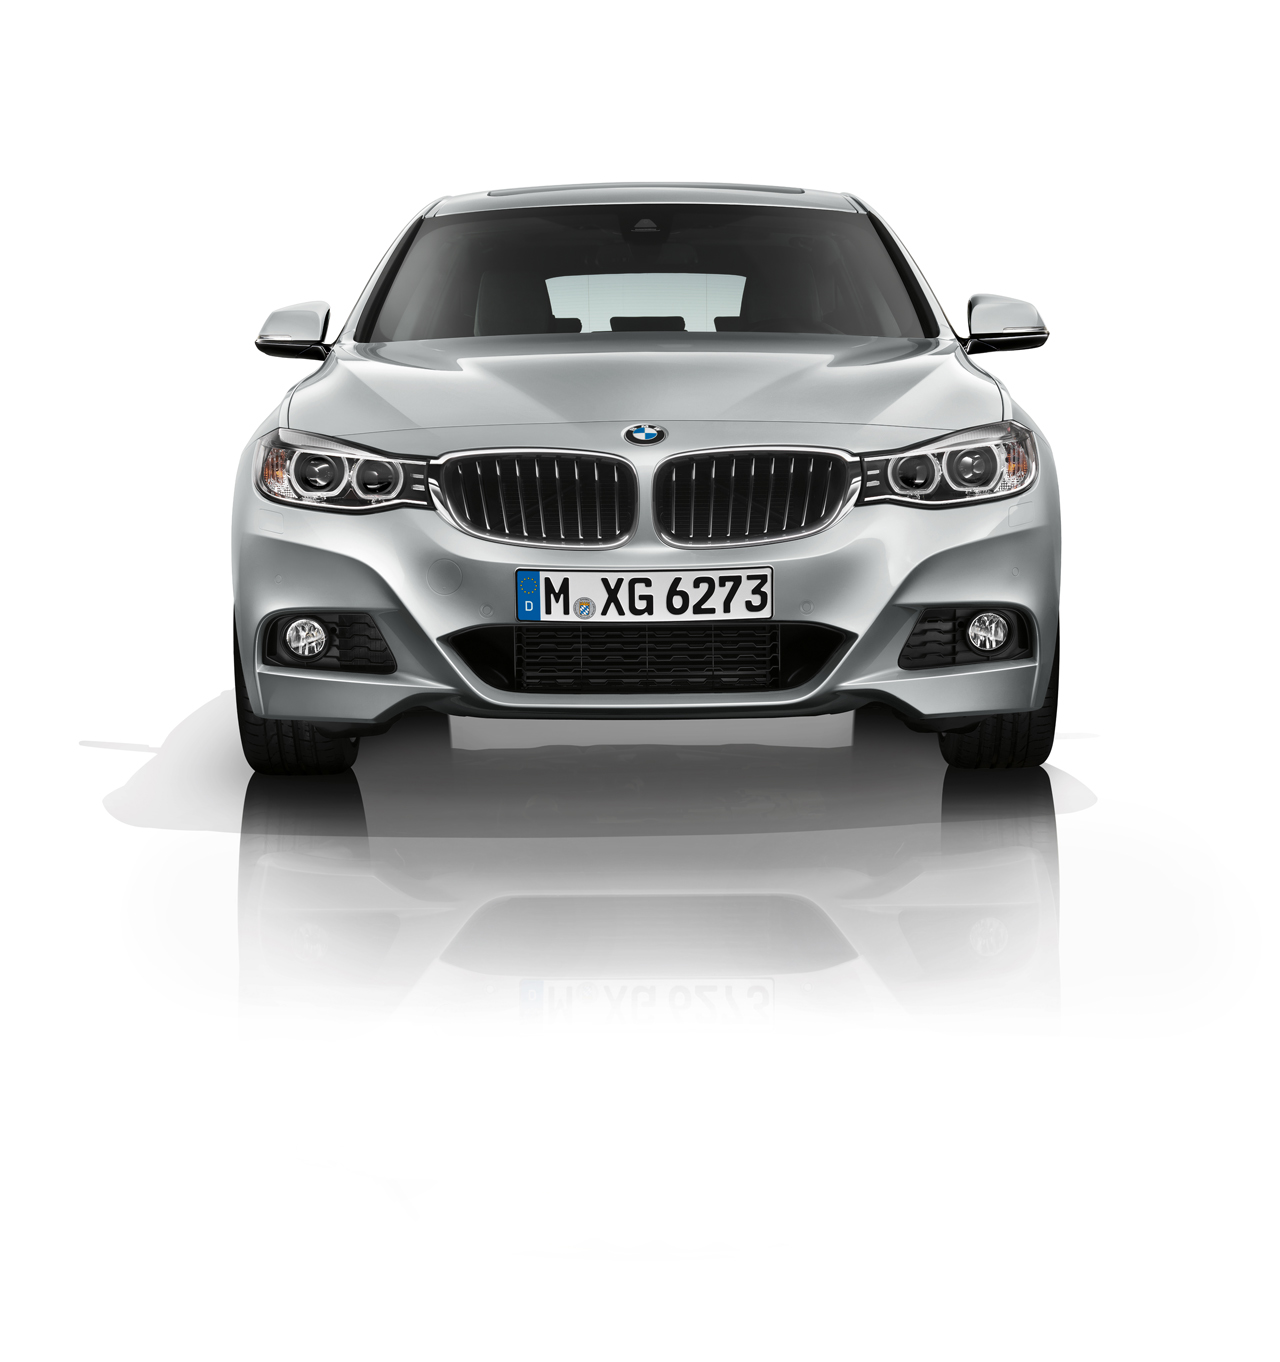 2014 BMW 3 Series Gran Turismo Has Arrived, Don't Call It